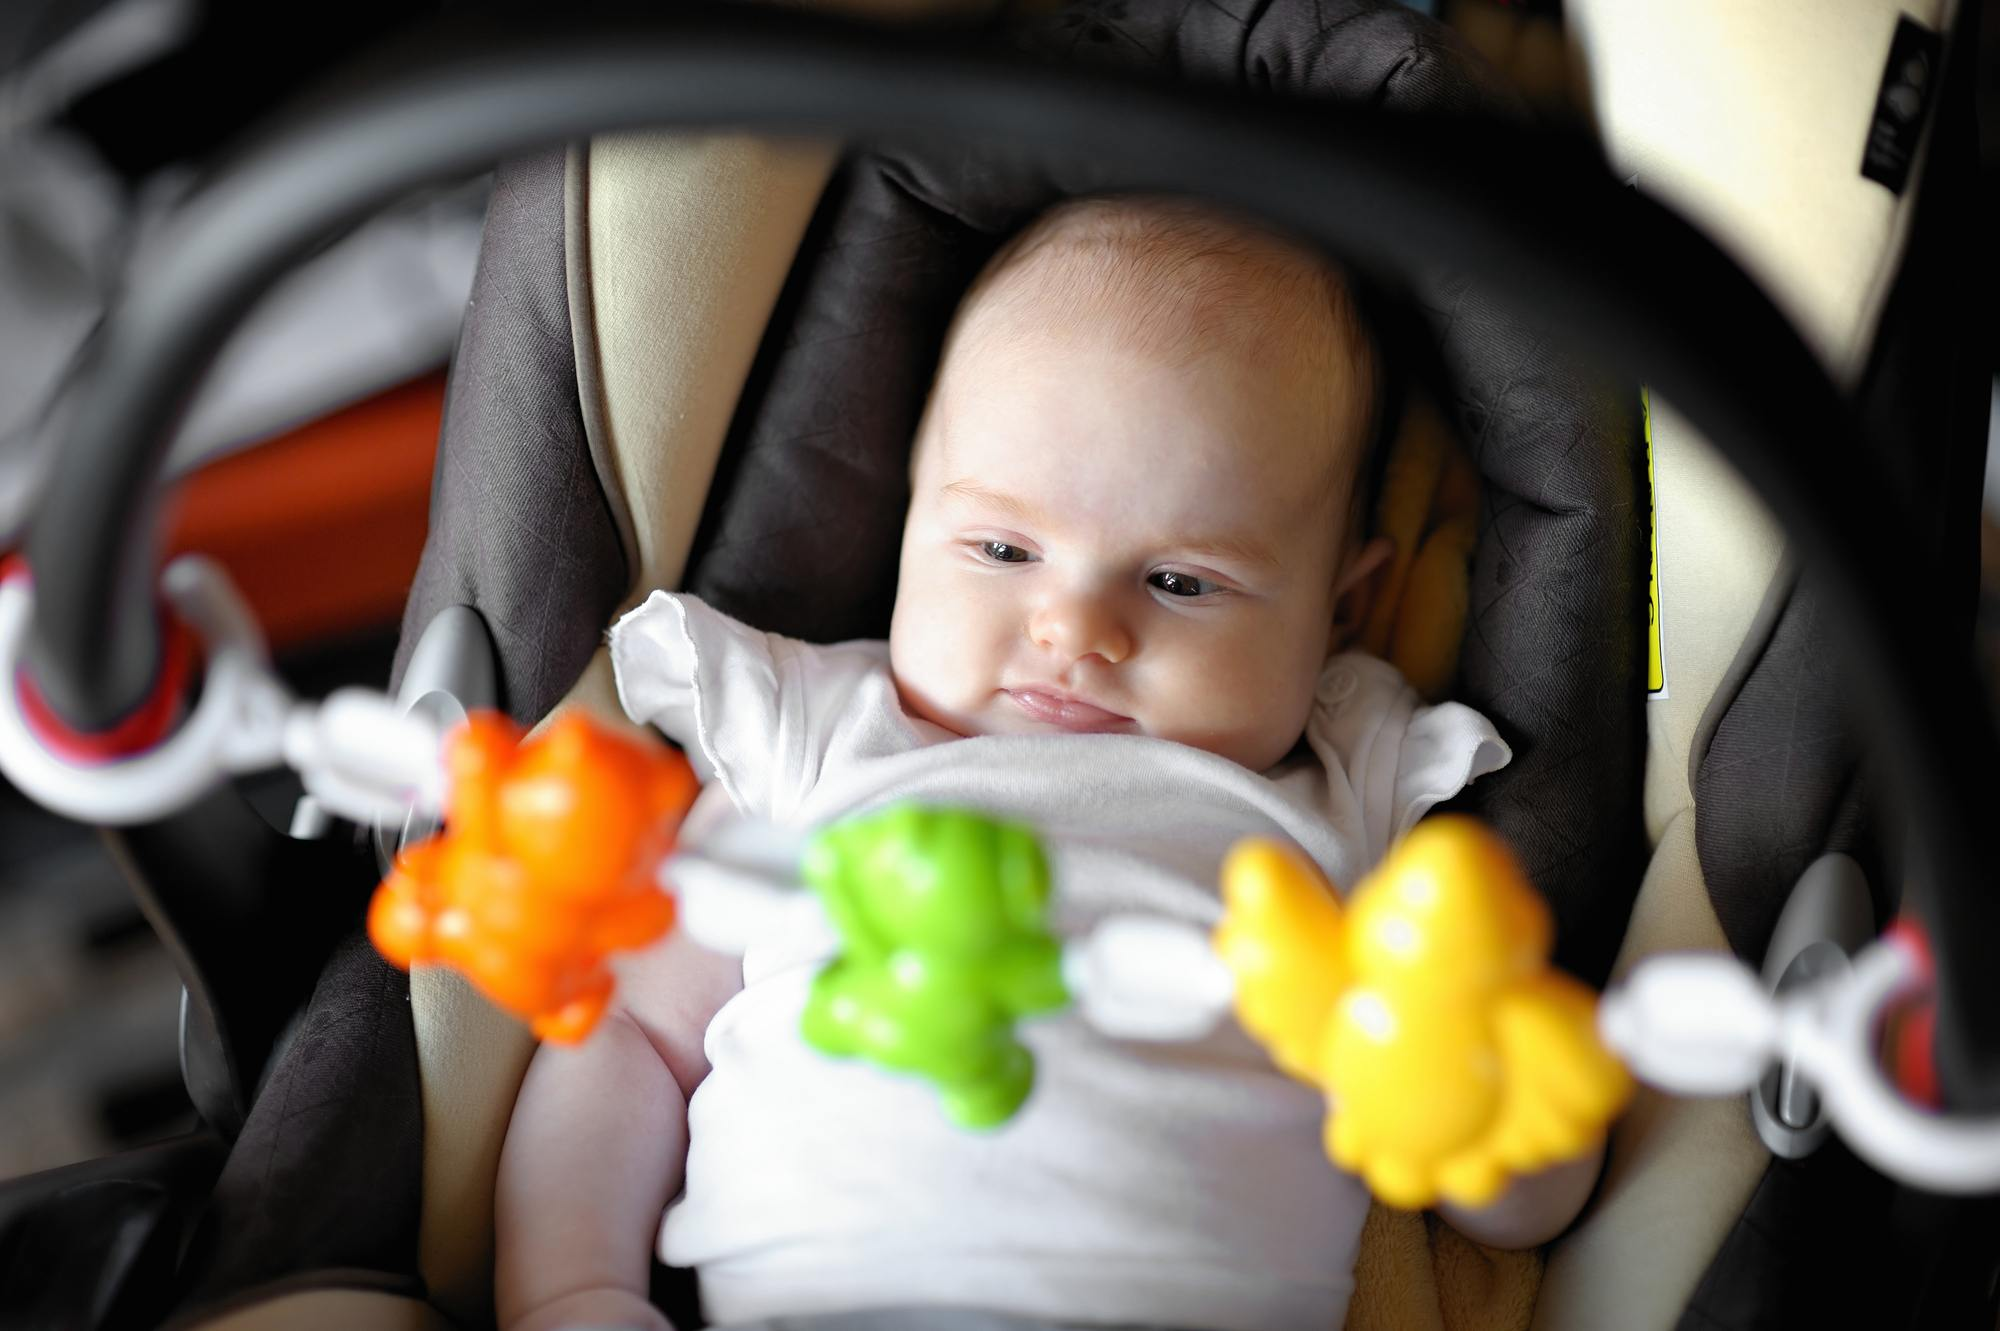 Pack plenty of toys when traveling with a baby